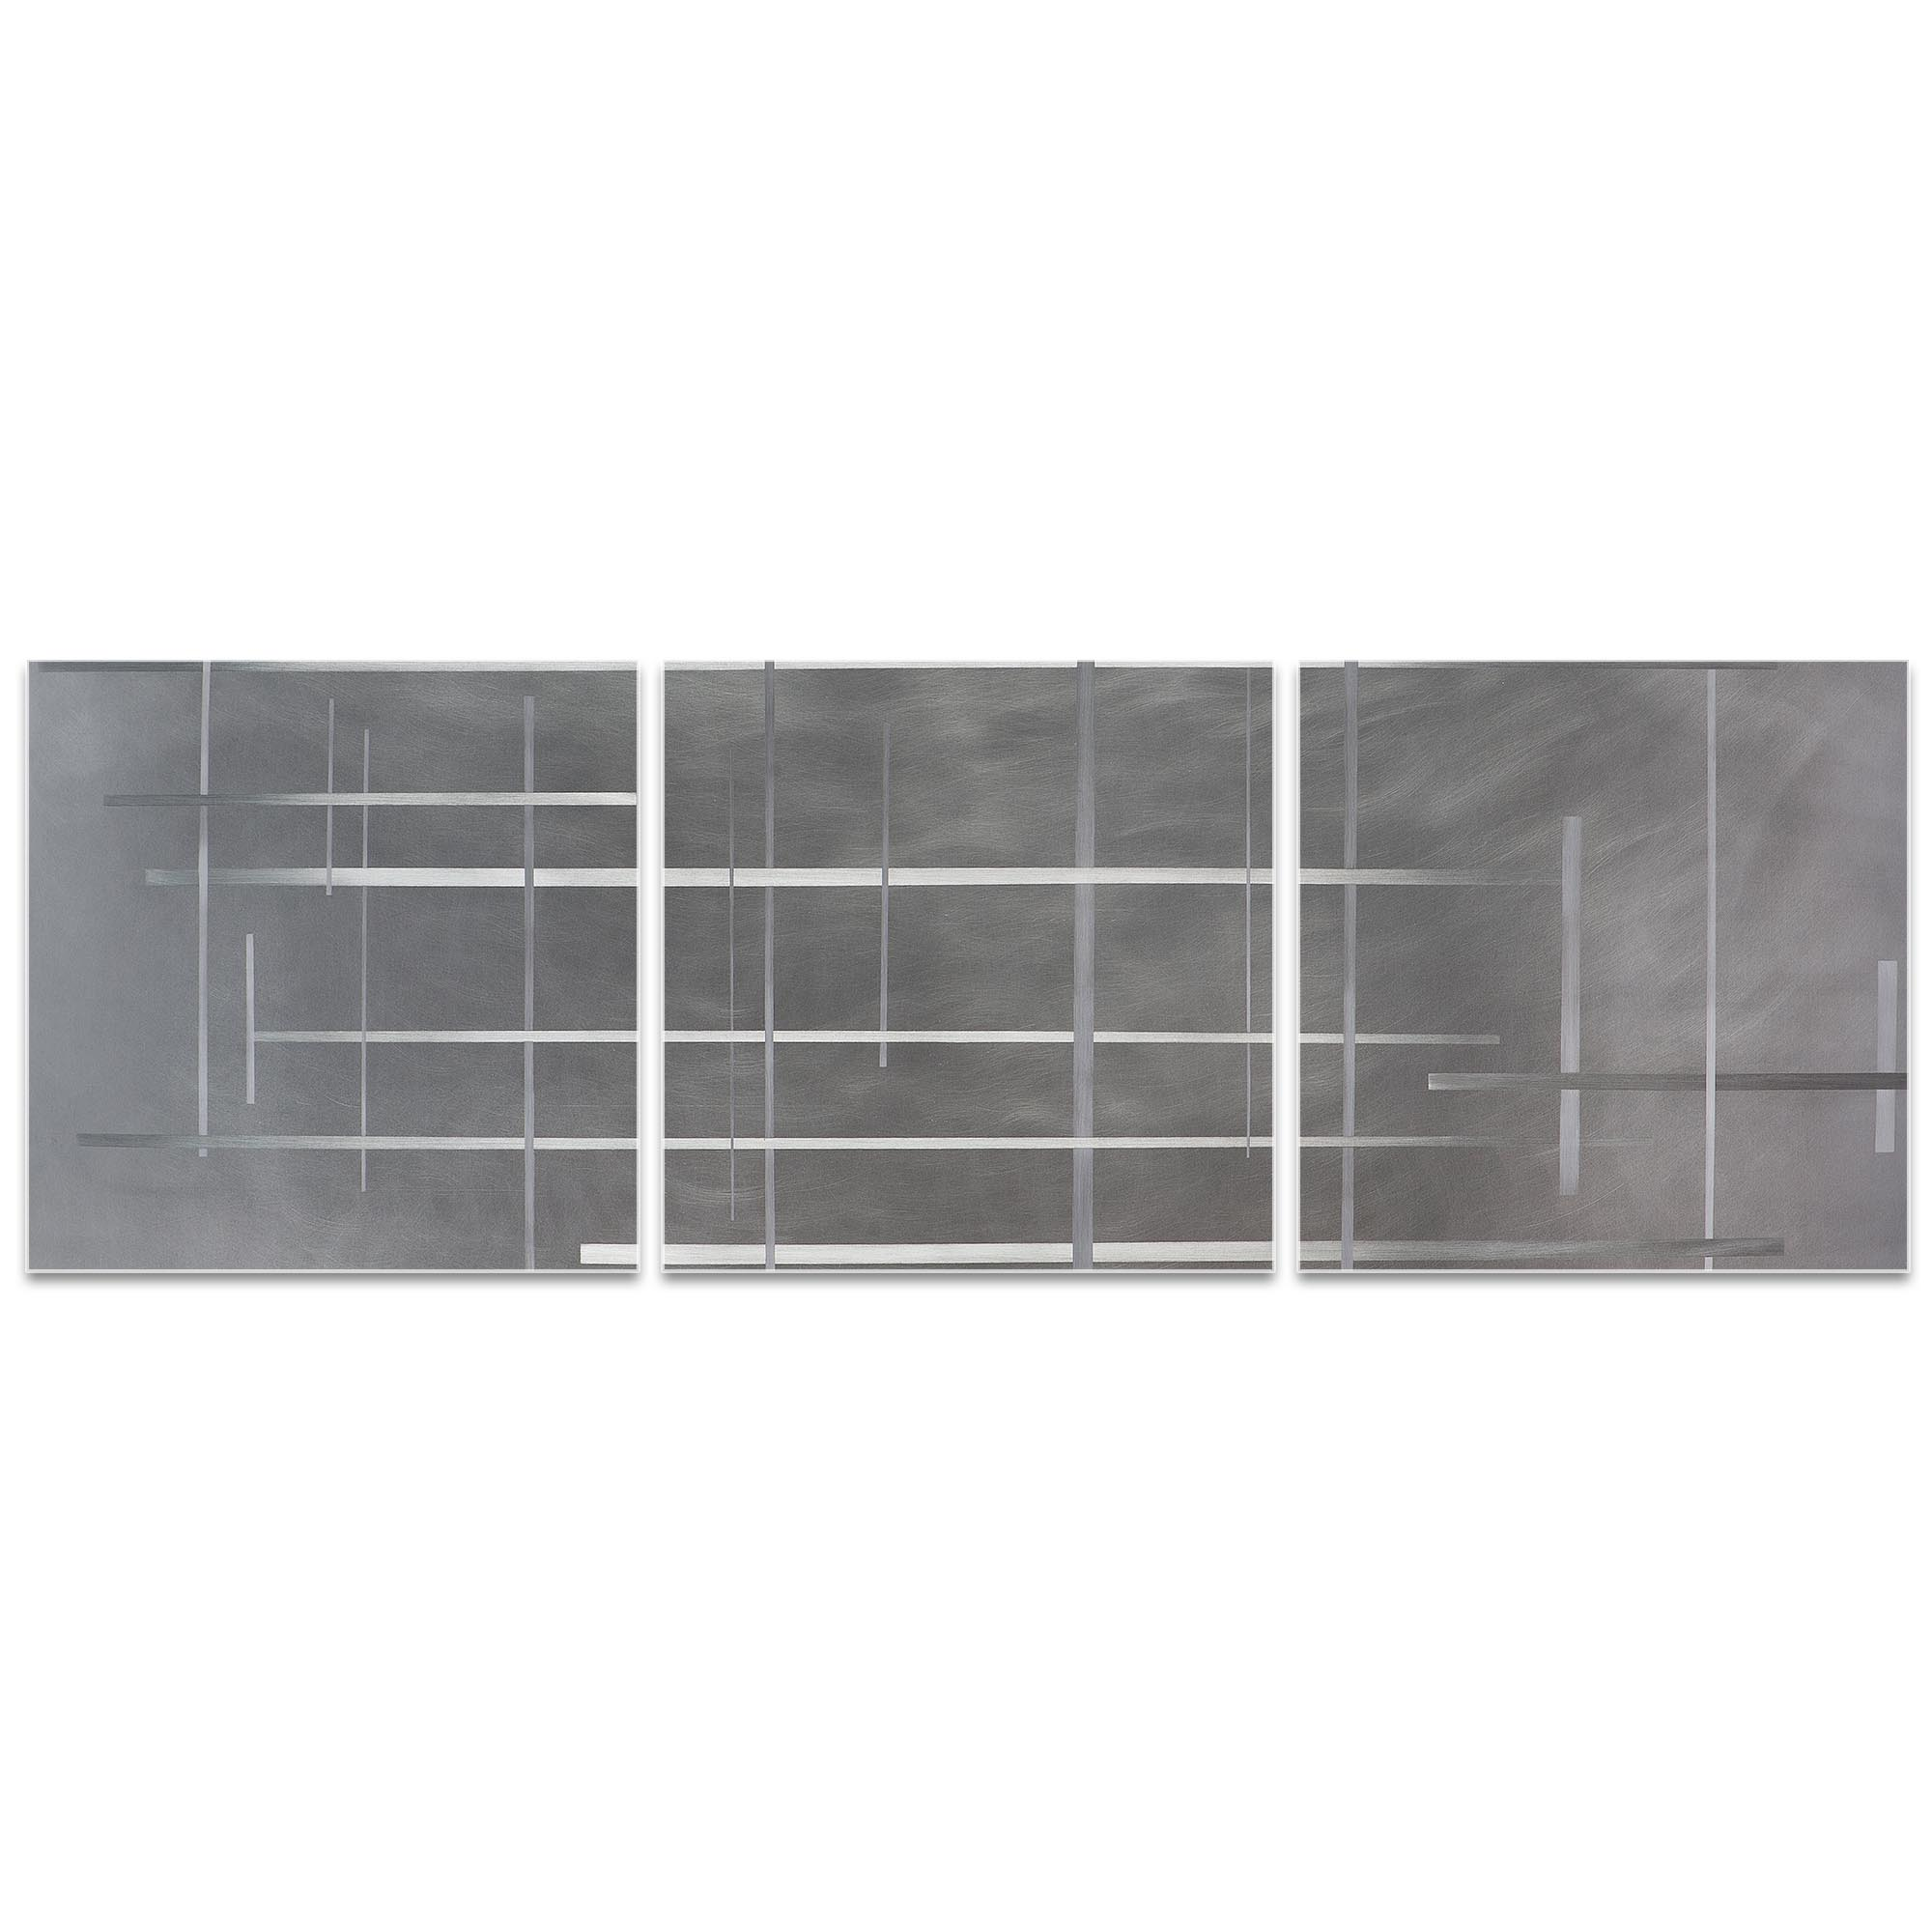 Lattice Triptych Large 70x22in. Metal or Acrylic Minimalistic Decor - Image 2